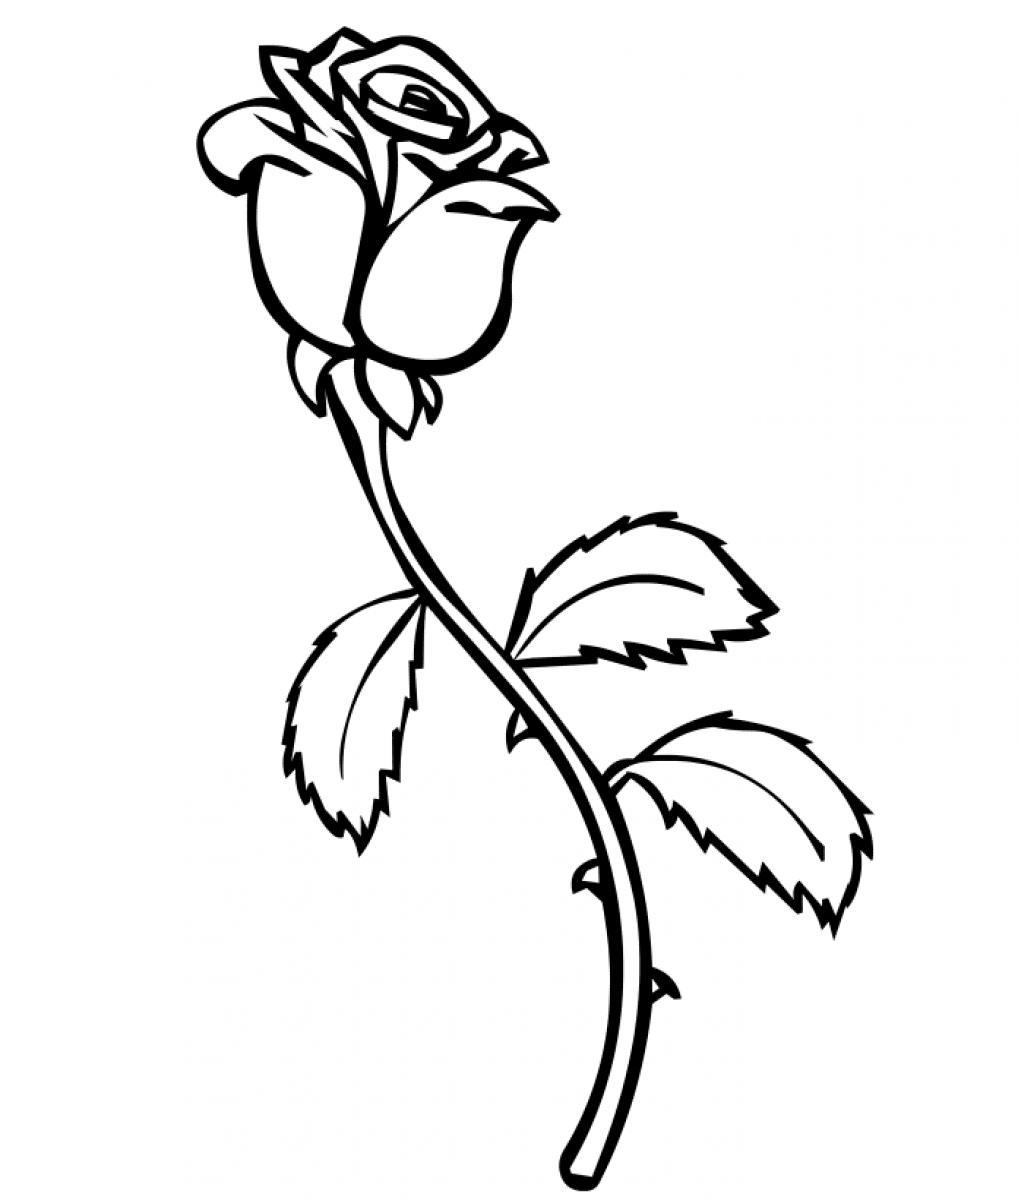 rose colouring pages roses coloring books rose colouring pages